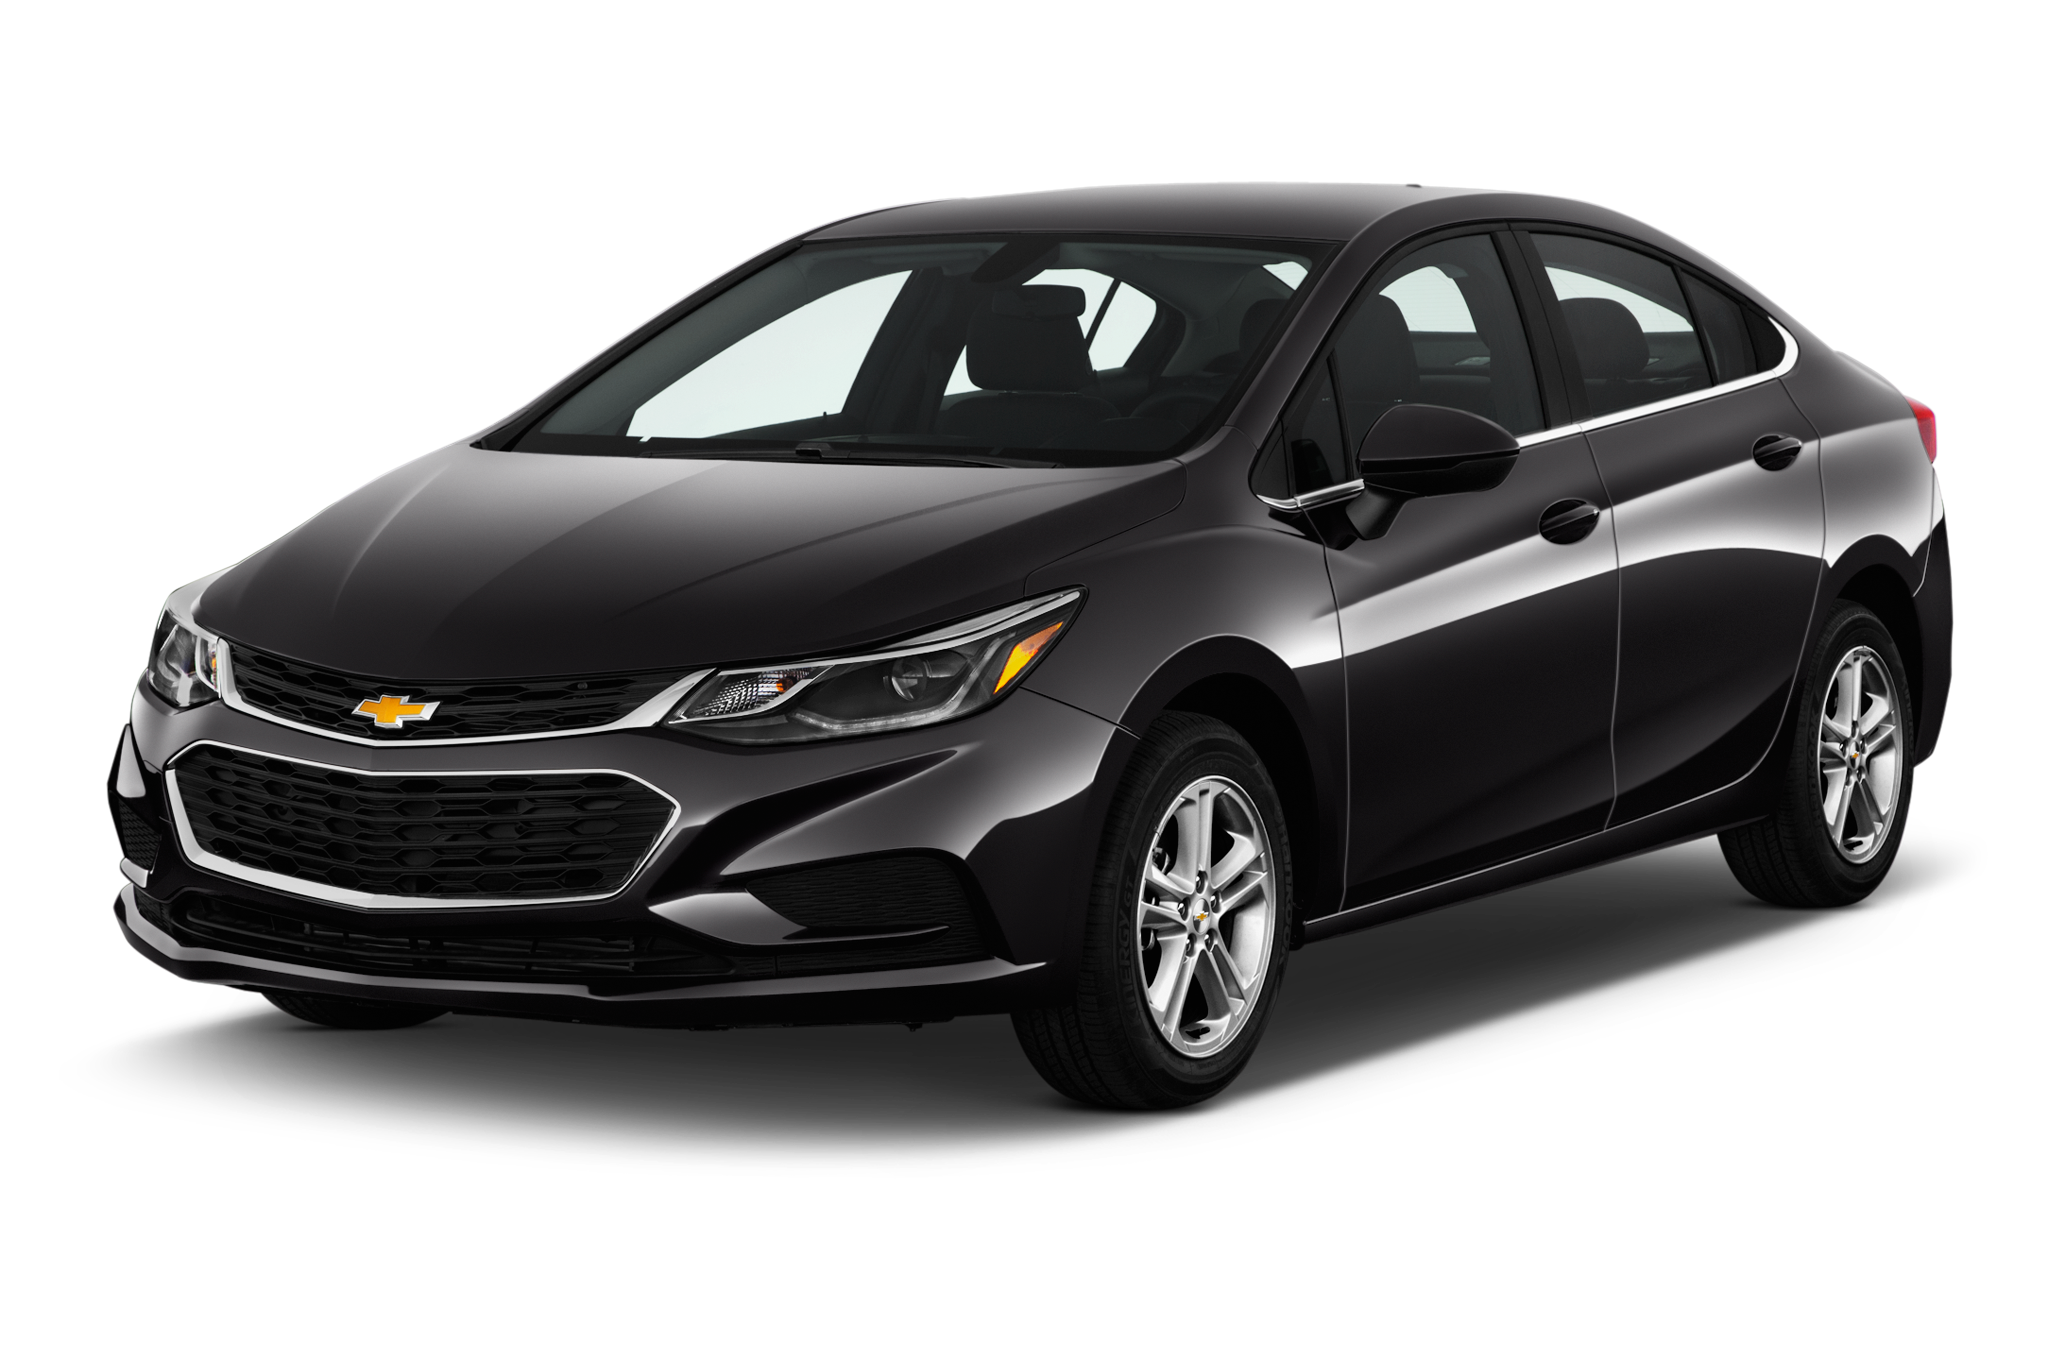 2016 Chevrolet Cruze Is Lighter And More Spacious Trailer Wiring Harness Installation 2015 Sonic Video